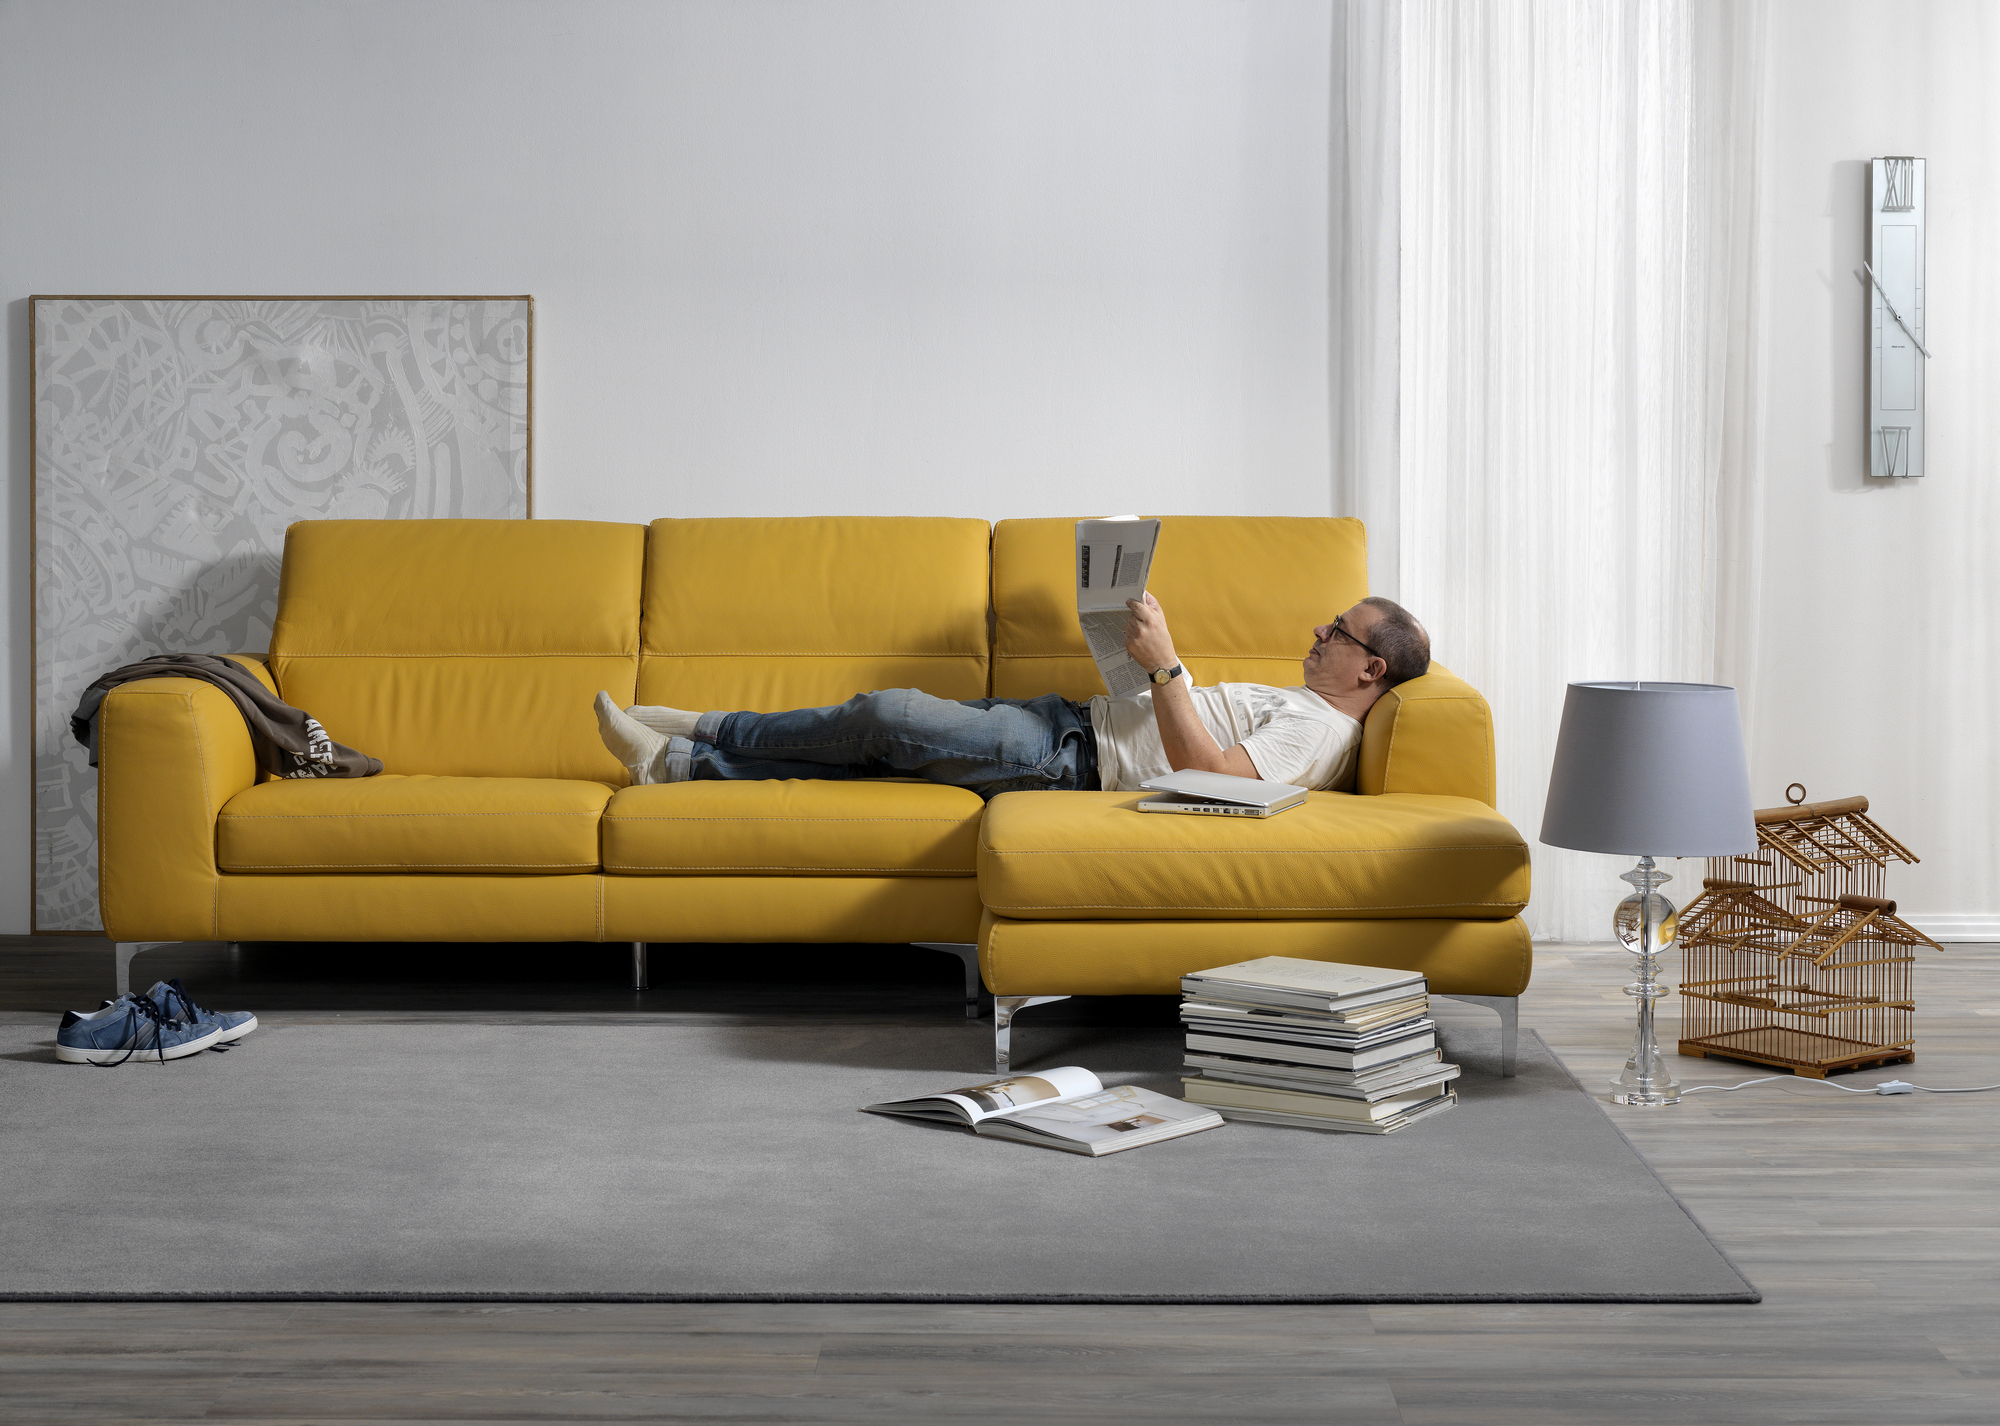 Single shot photo of a room with a sofa and person